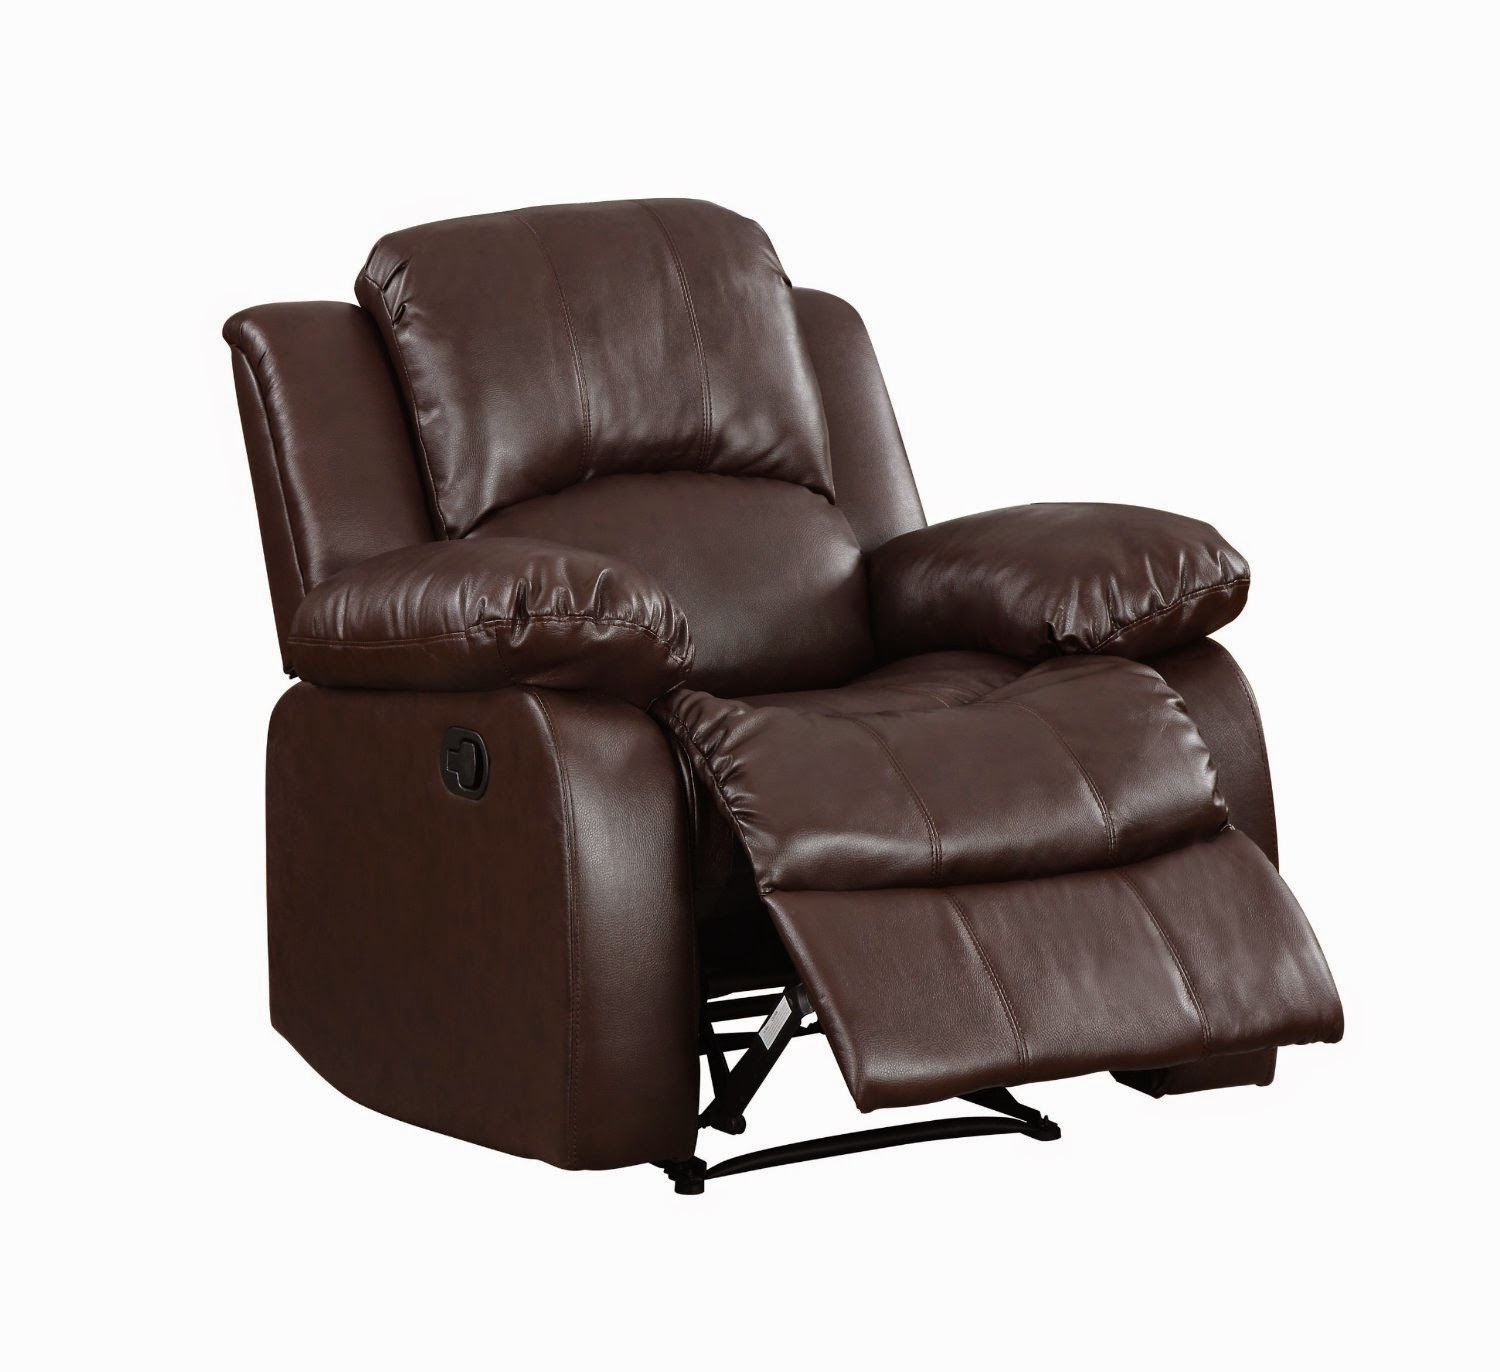 Best leather reclining sofa brands reviews costco leather reclining sofa set Leather reclining sofa loveseat